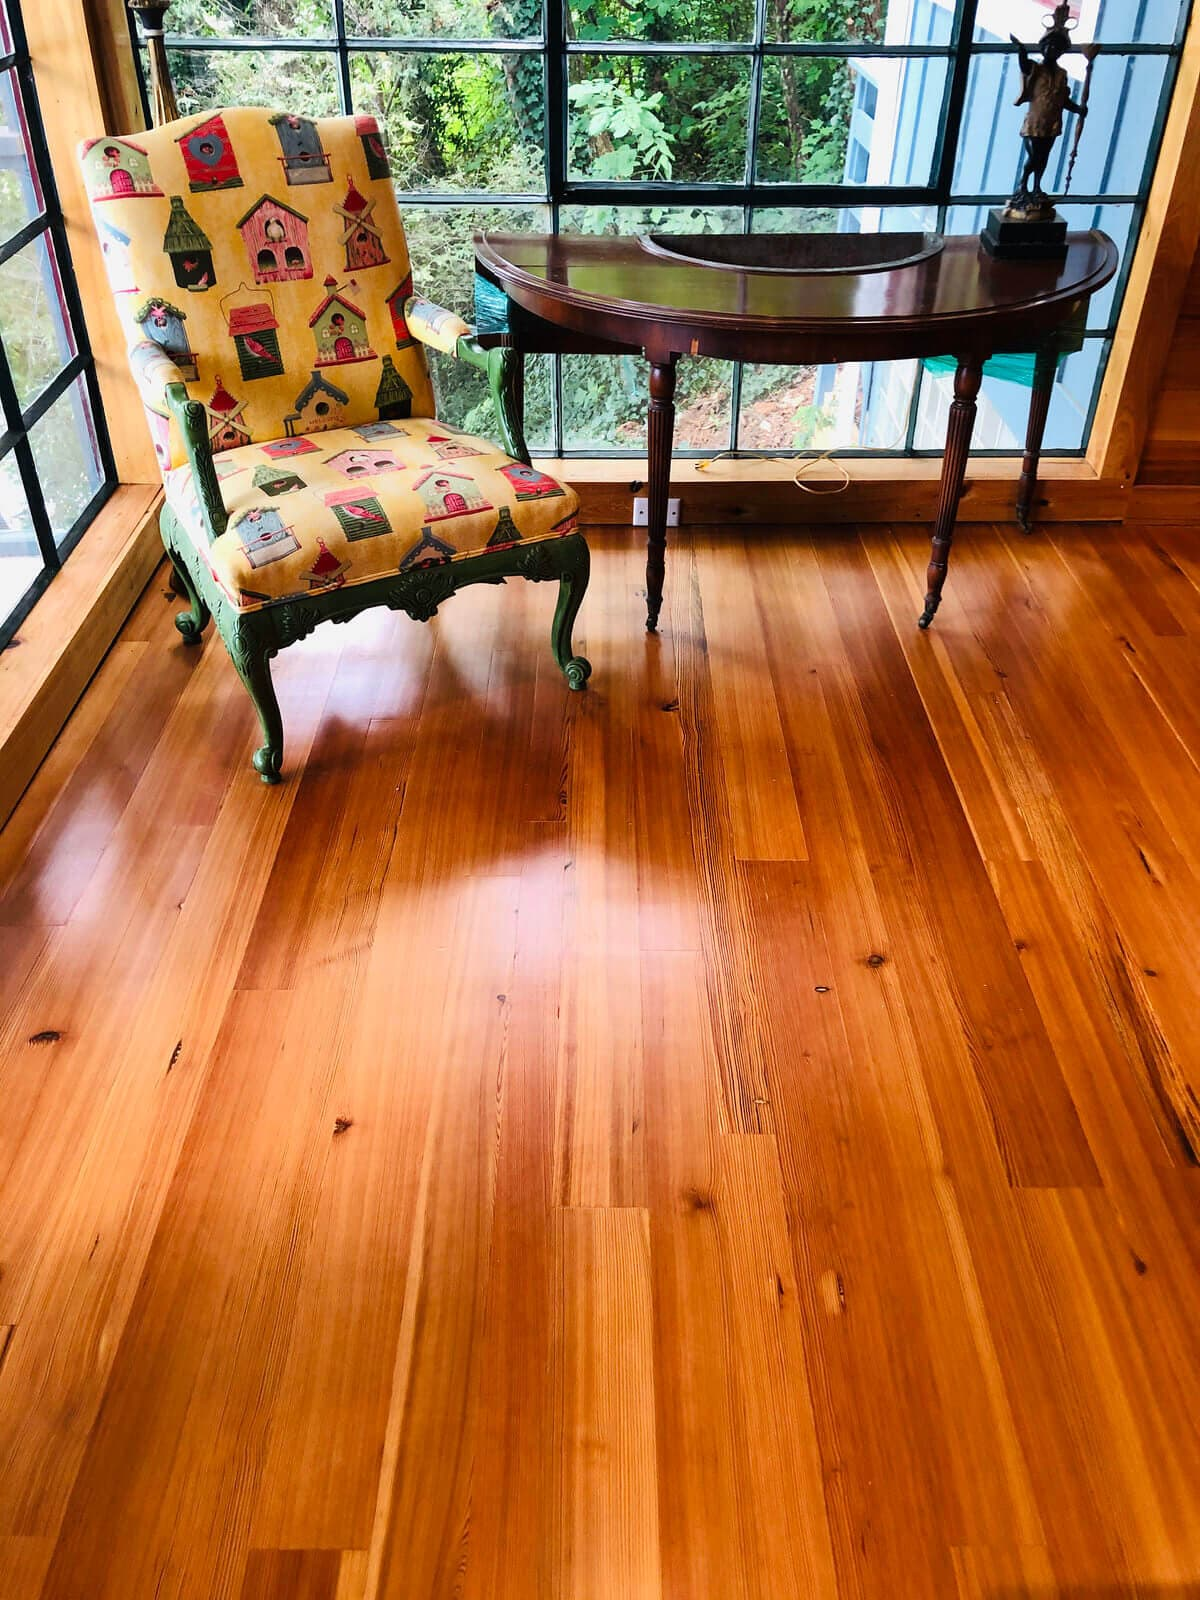 Classic old wood flooring restored to original beauty.